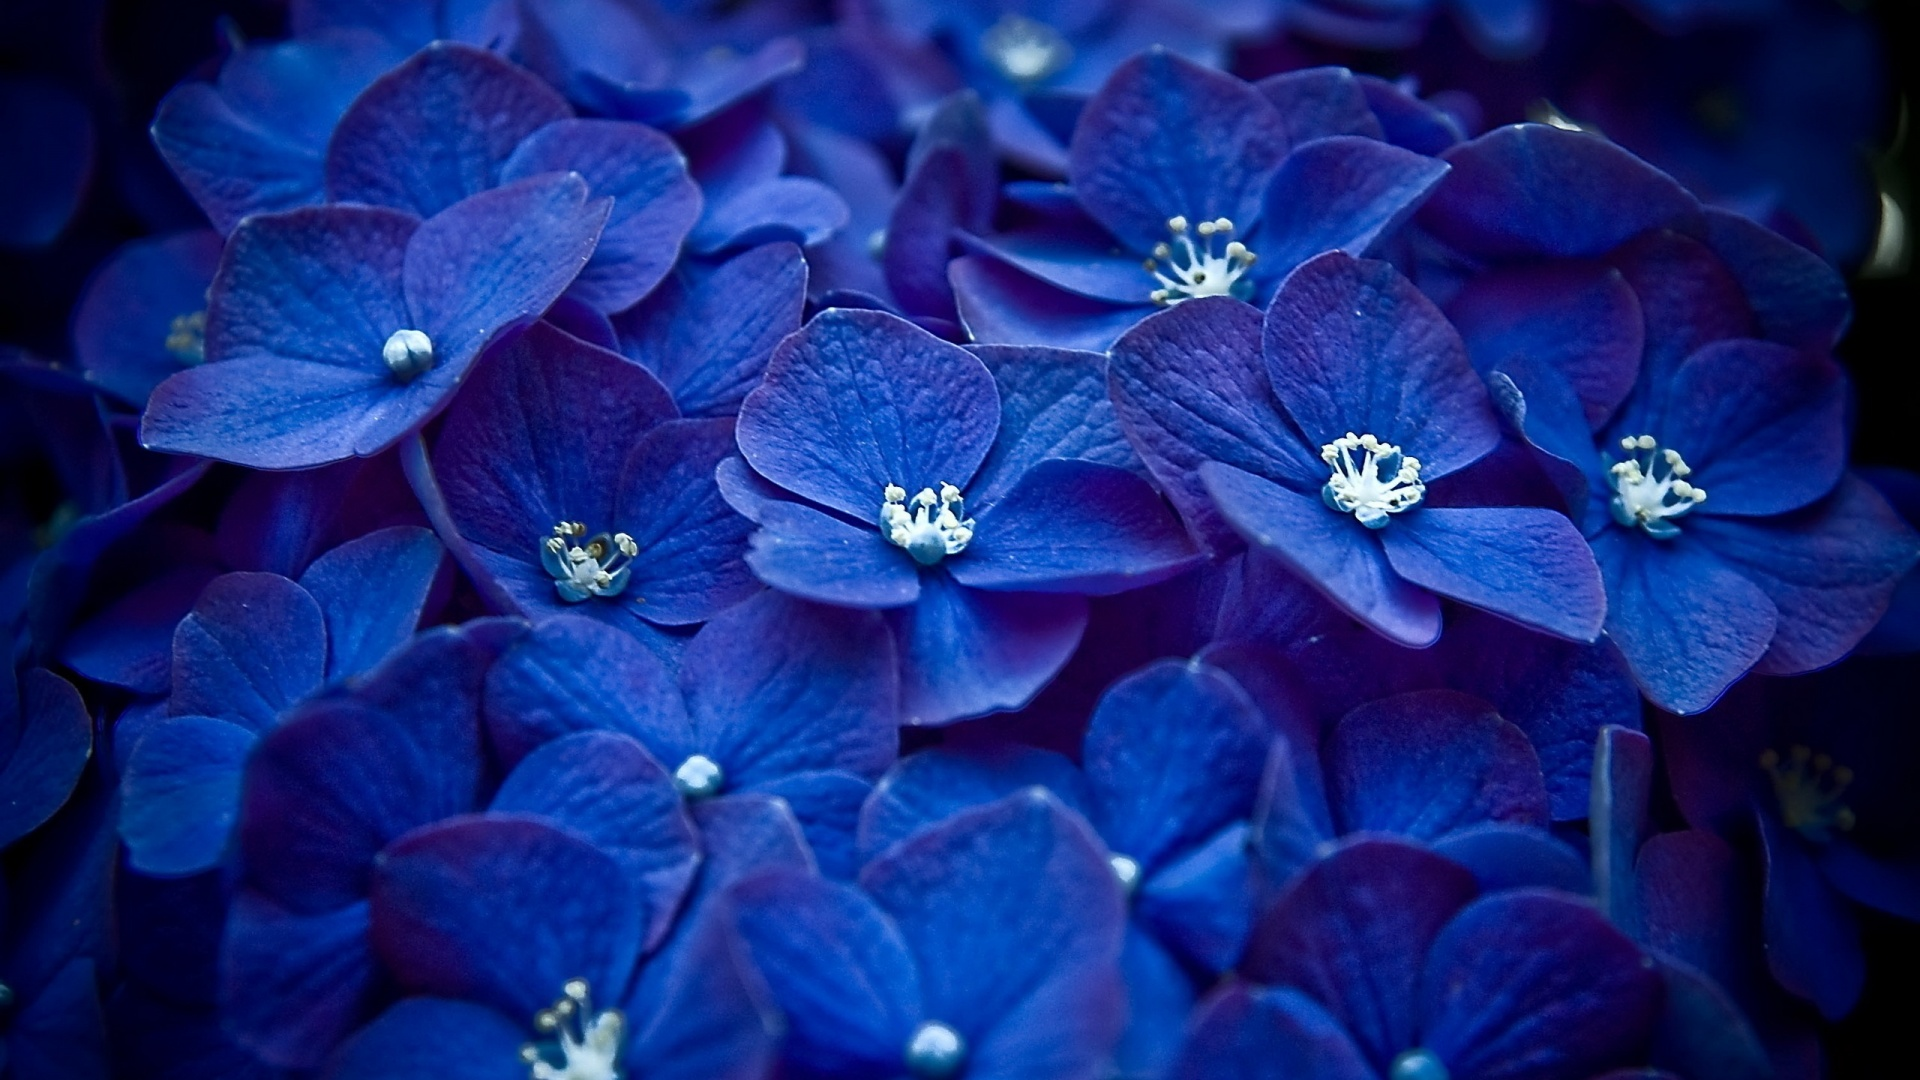 blue flowers hd free wallpapers for tumblr